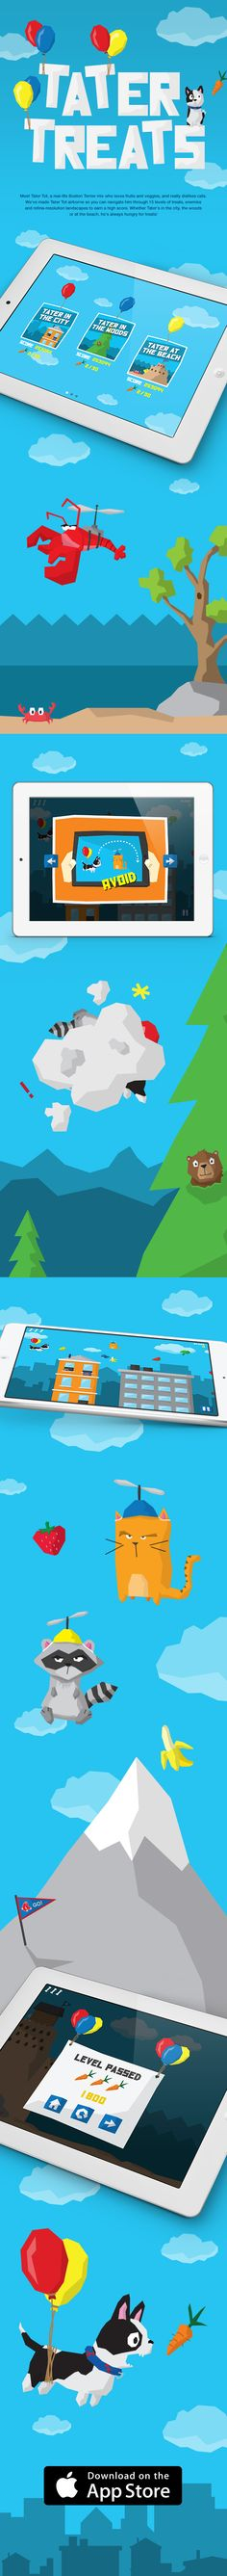 Tater Treats : iOS Game Design on Behance